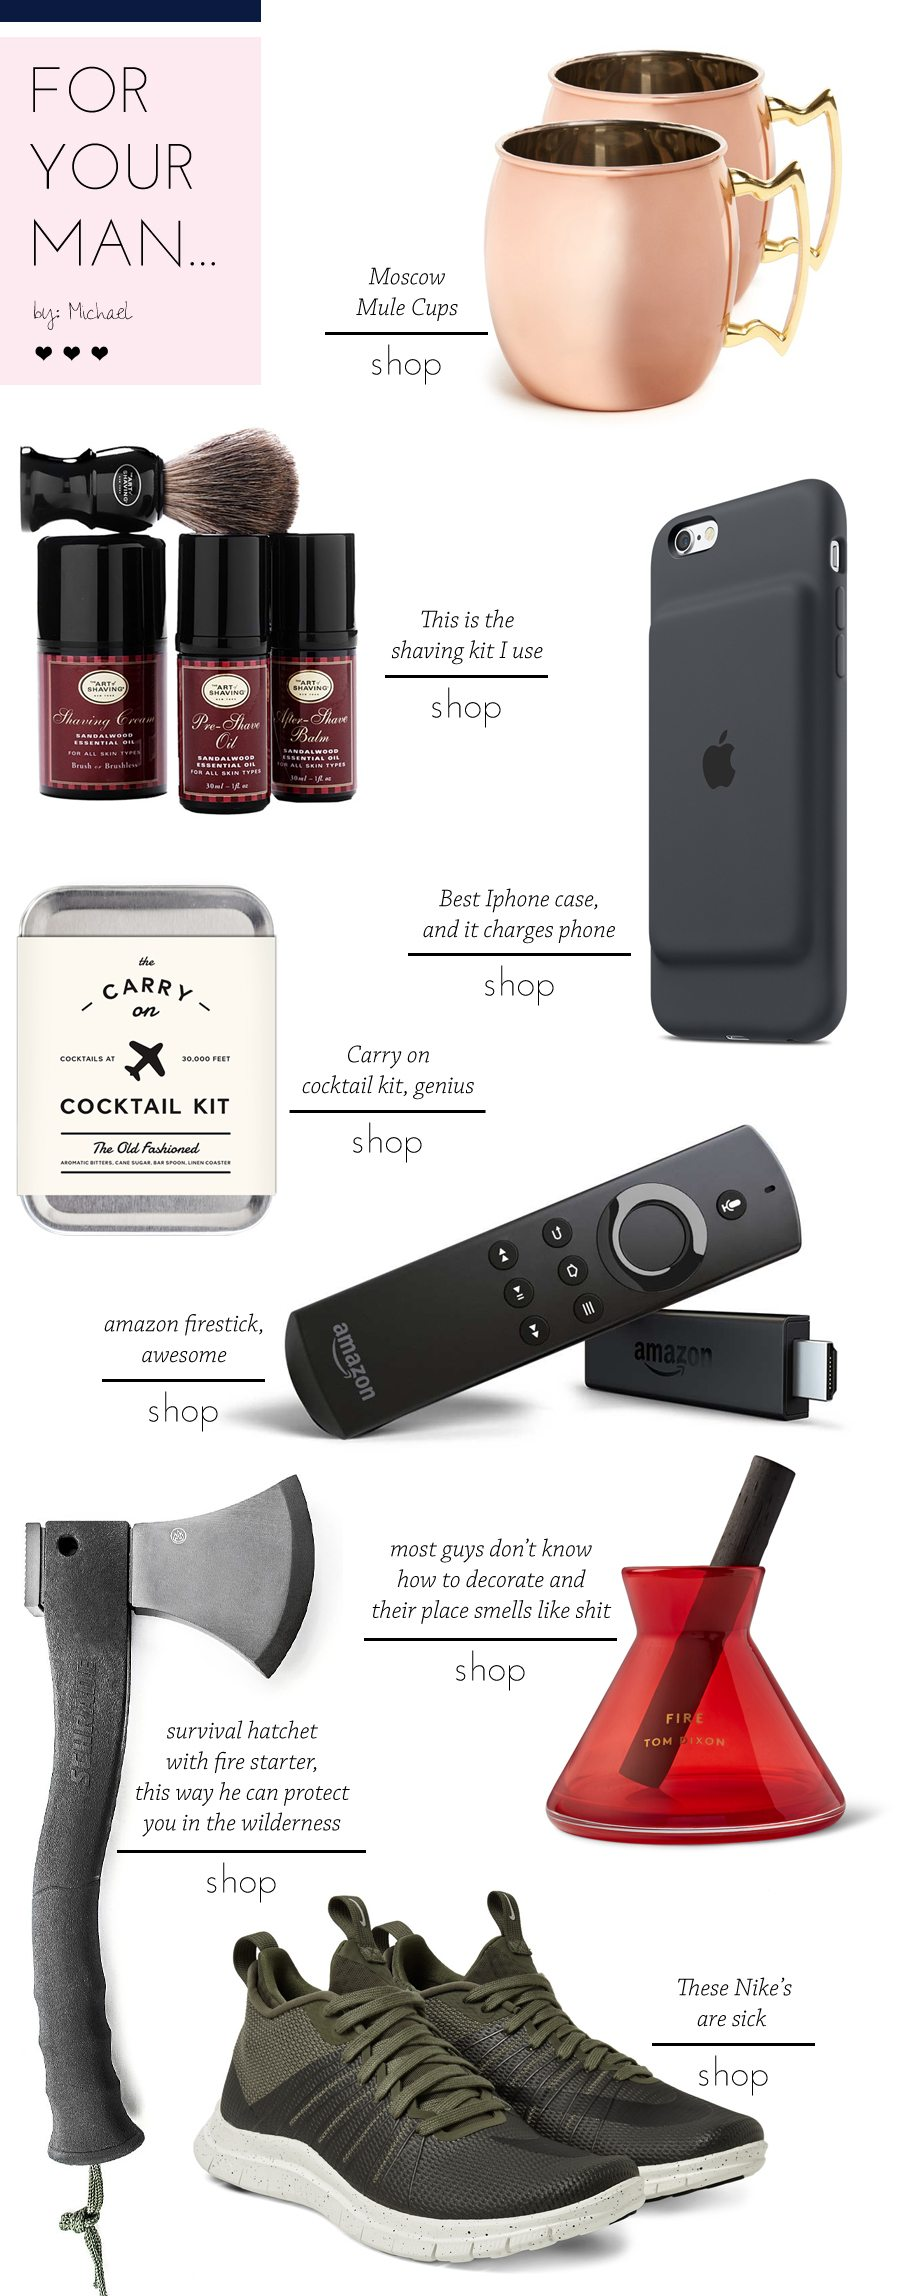 valentines day gifts for your man by michael | by the skinny confidential